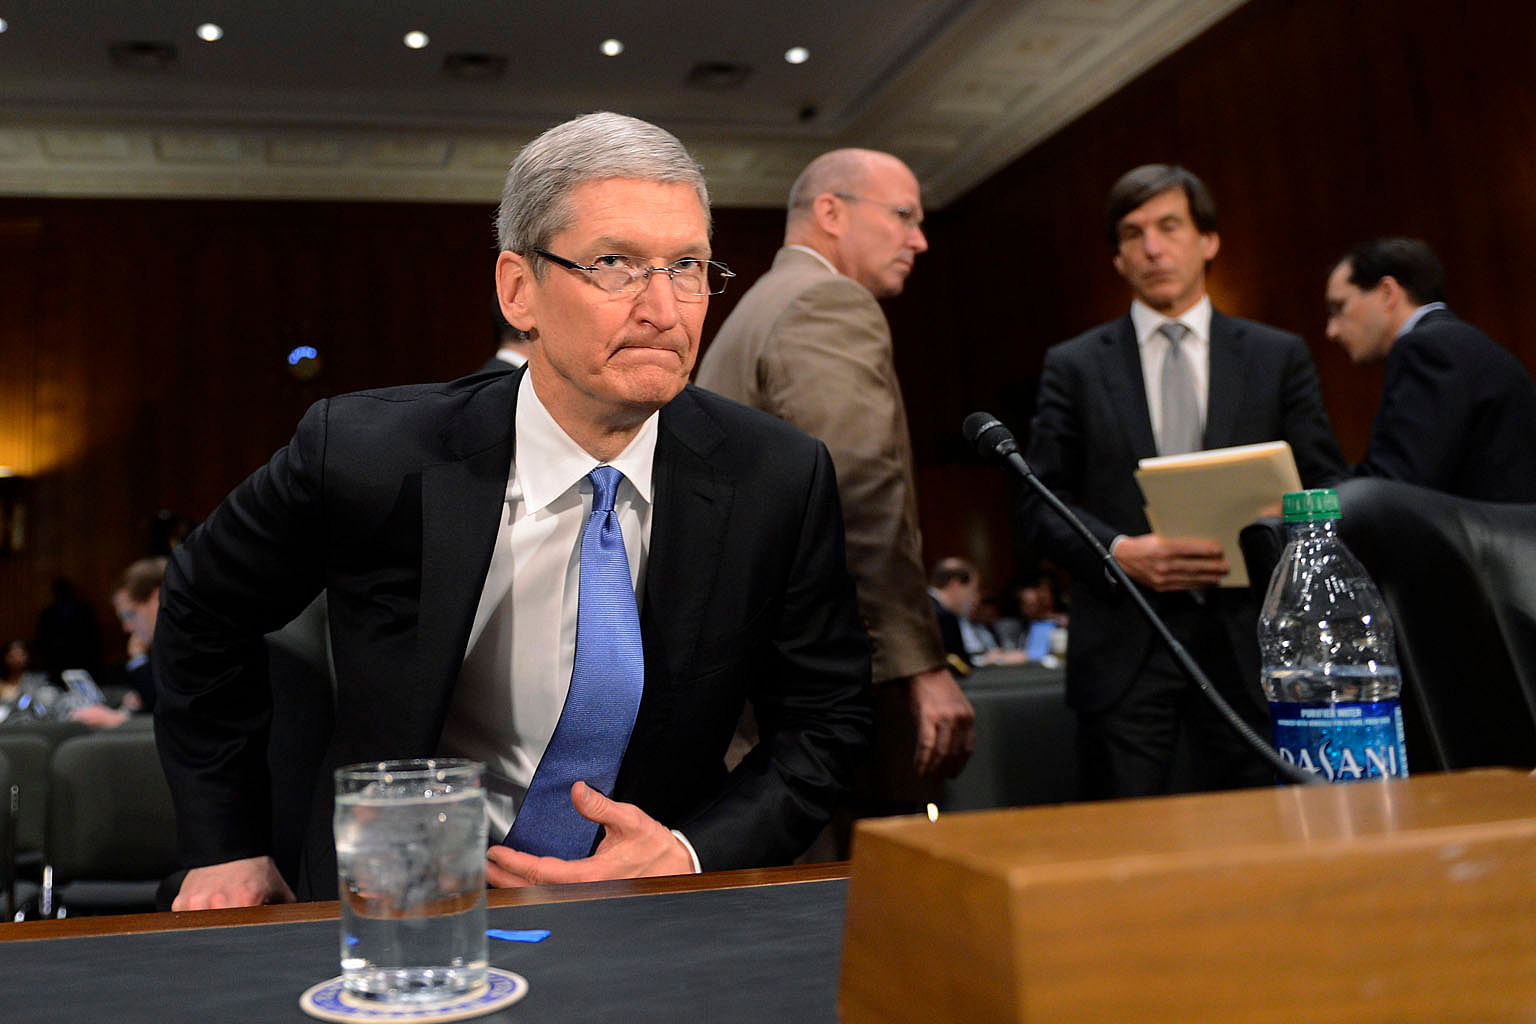 In an open letter posted on Apple's website last Tuesday, chief executive Tim Cook (above) refused a federal magistrate judge's order that the company help the FBI access data stored on the iPhone used by Syed Rizwan Farook, one of the gunmen in the San B